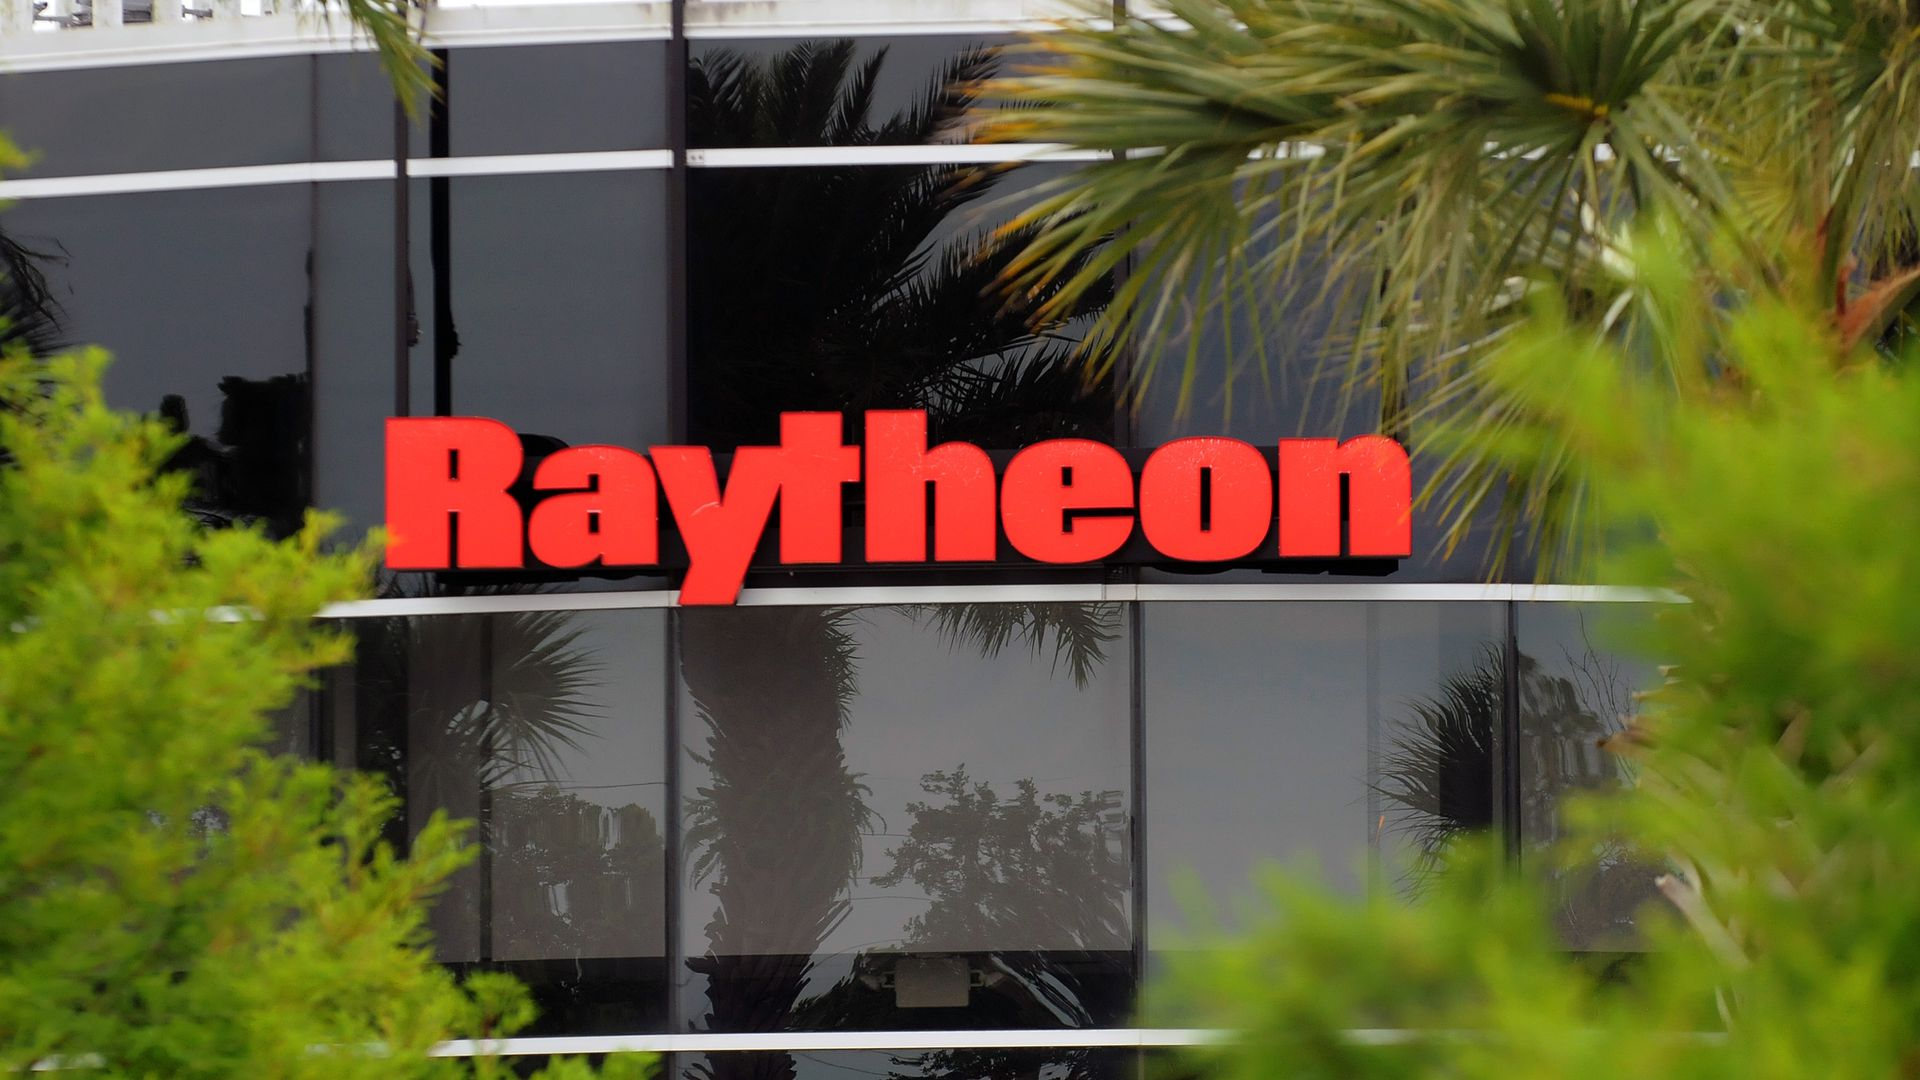 In this image, the Raytheon logo is seen on the side of a glass building, framed by trees.